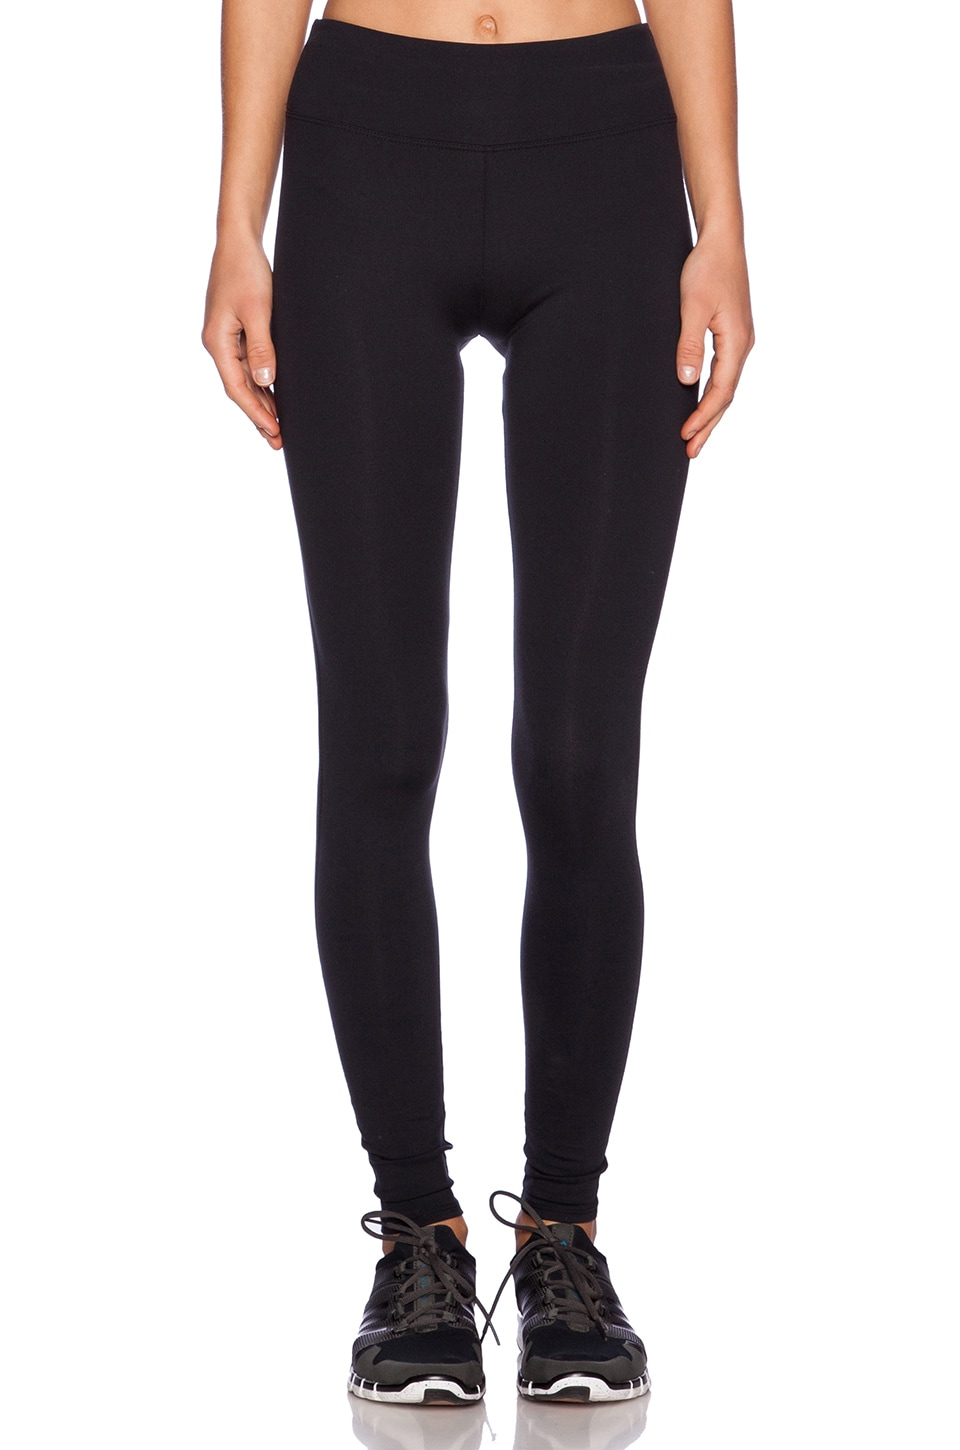 SOLOW Eclon High Impact Legging in Black